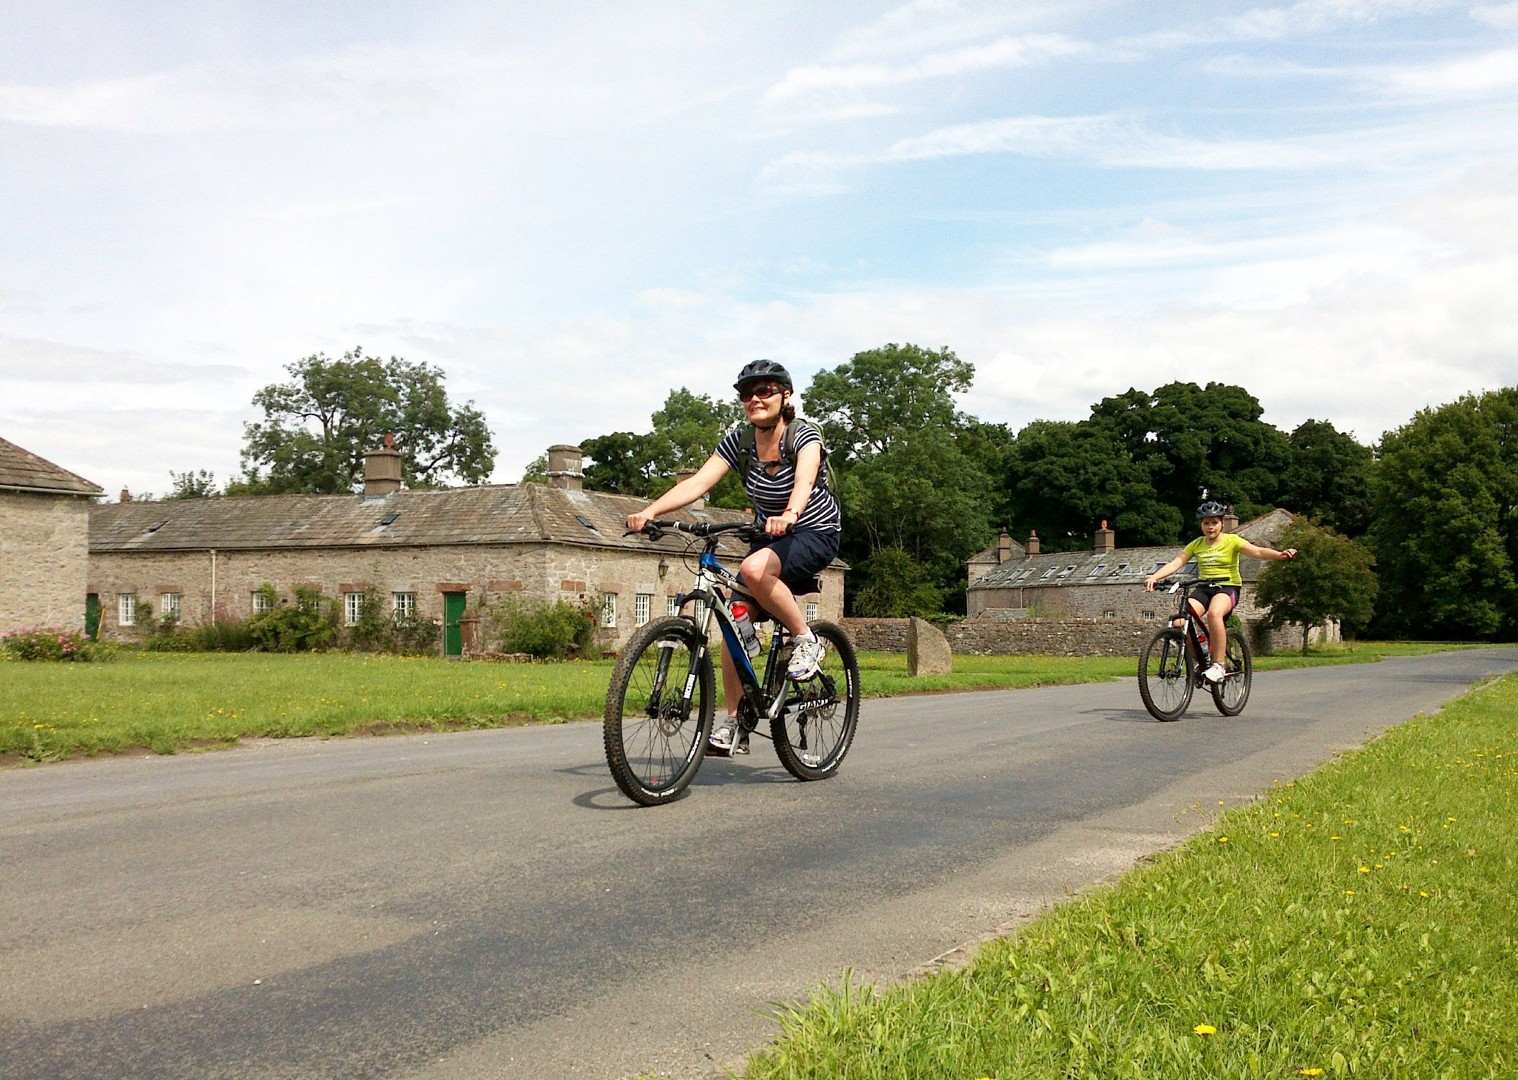 guided-uk-cycling-holiday-family-lake-district.jpg - UK - Lake District - Bike Skills - Family Cycling